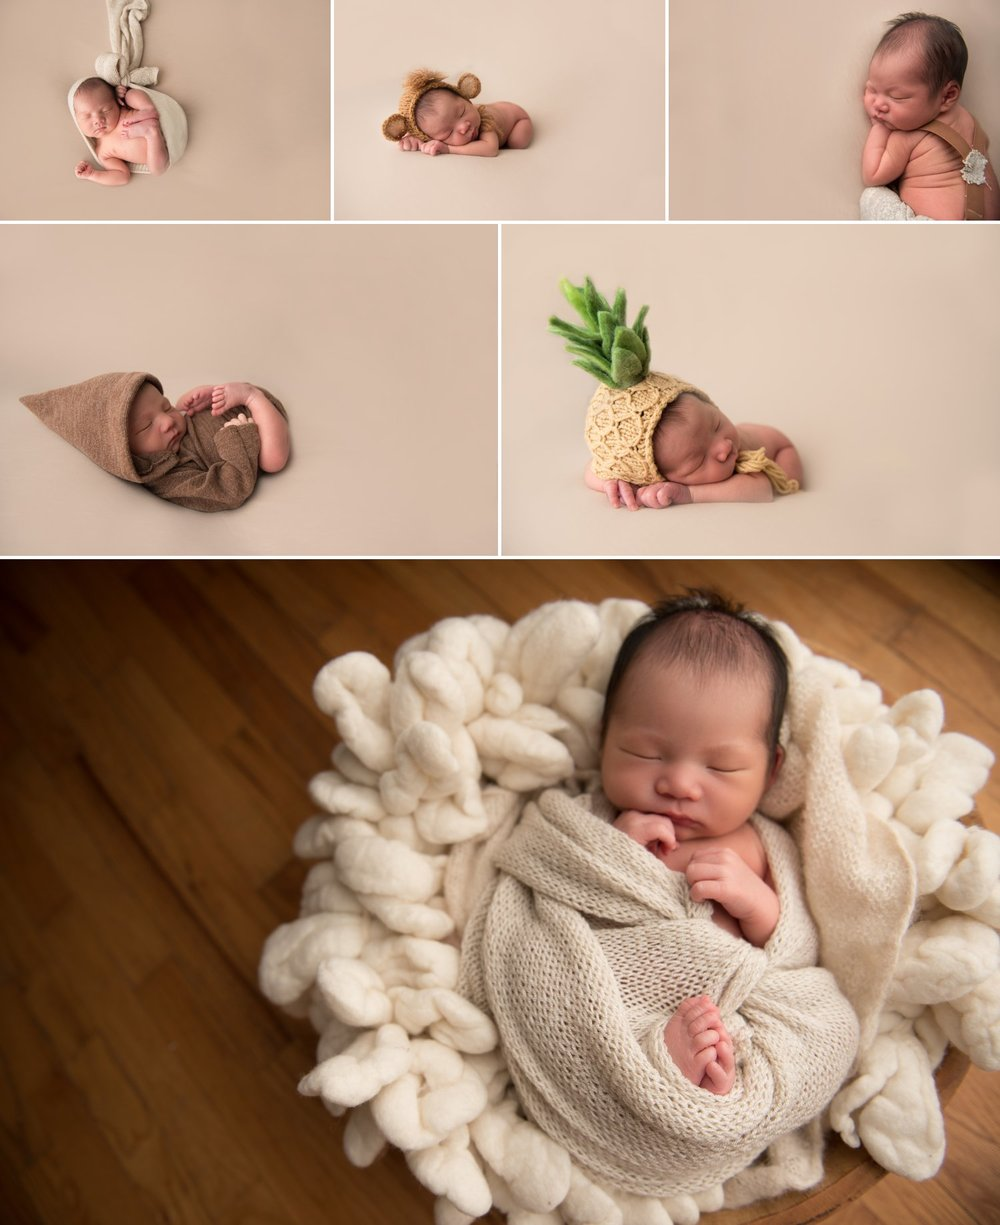 pasadena-newborn-photographer-organic-baby-boy-session-2